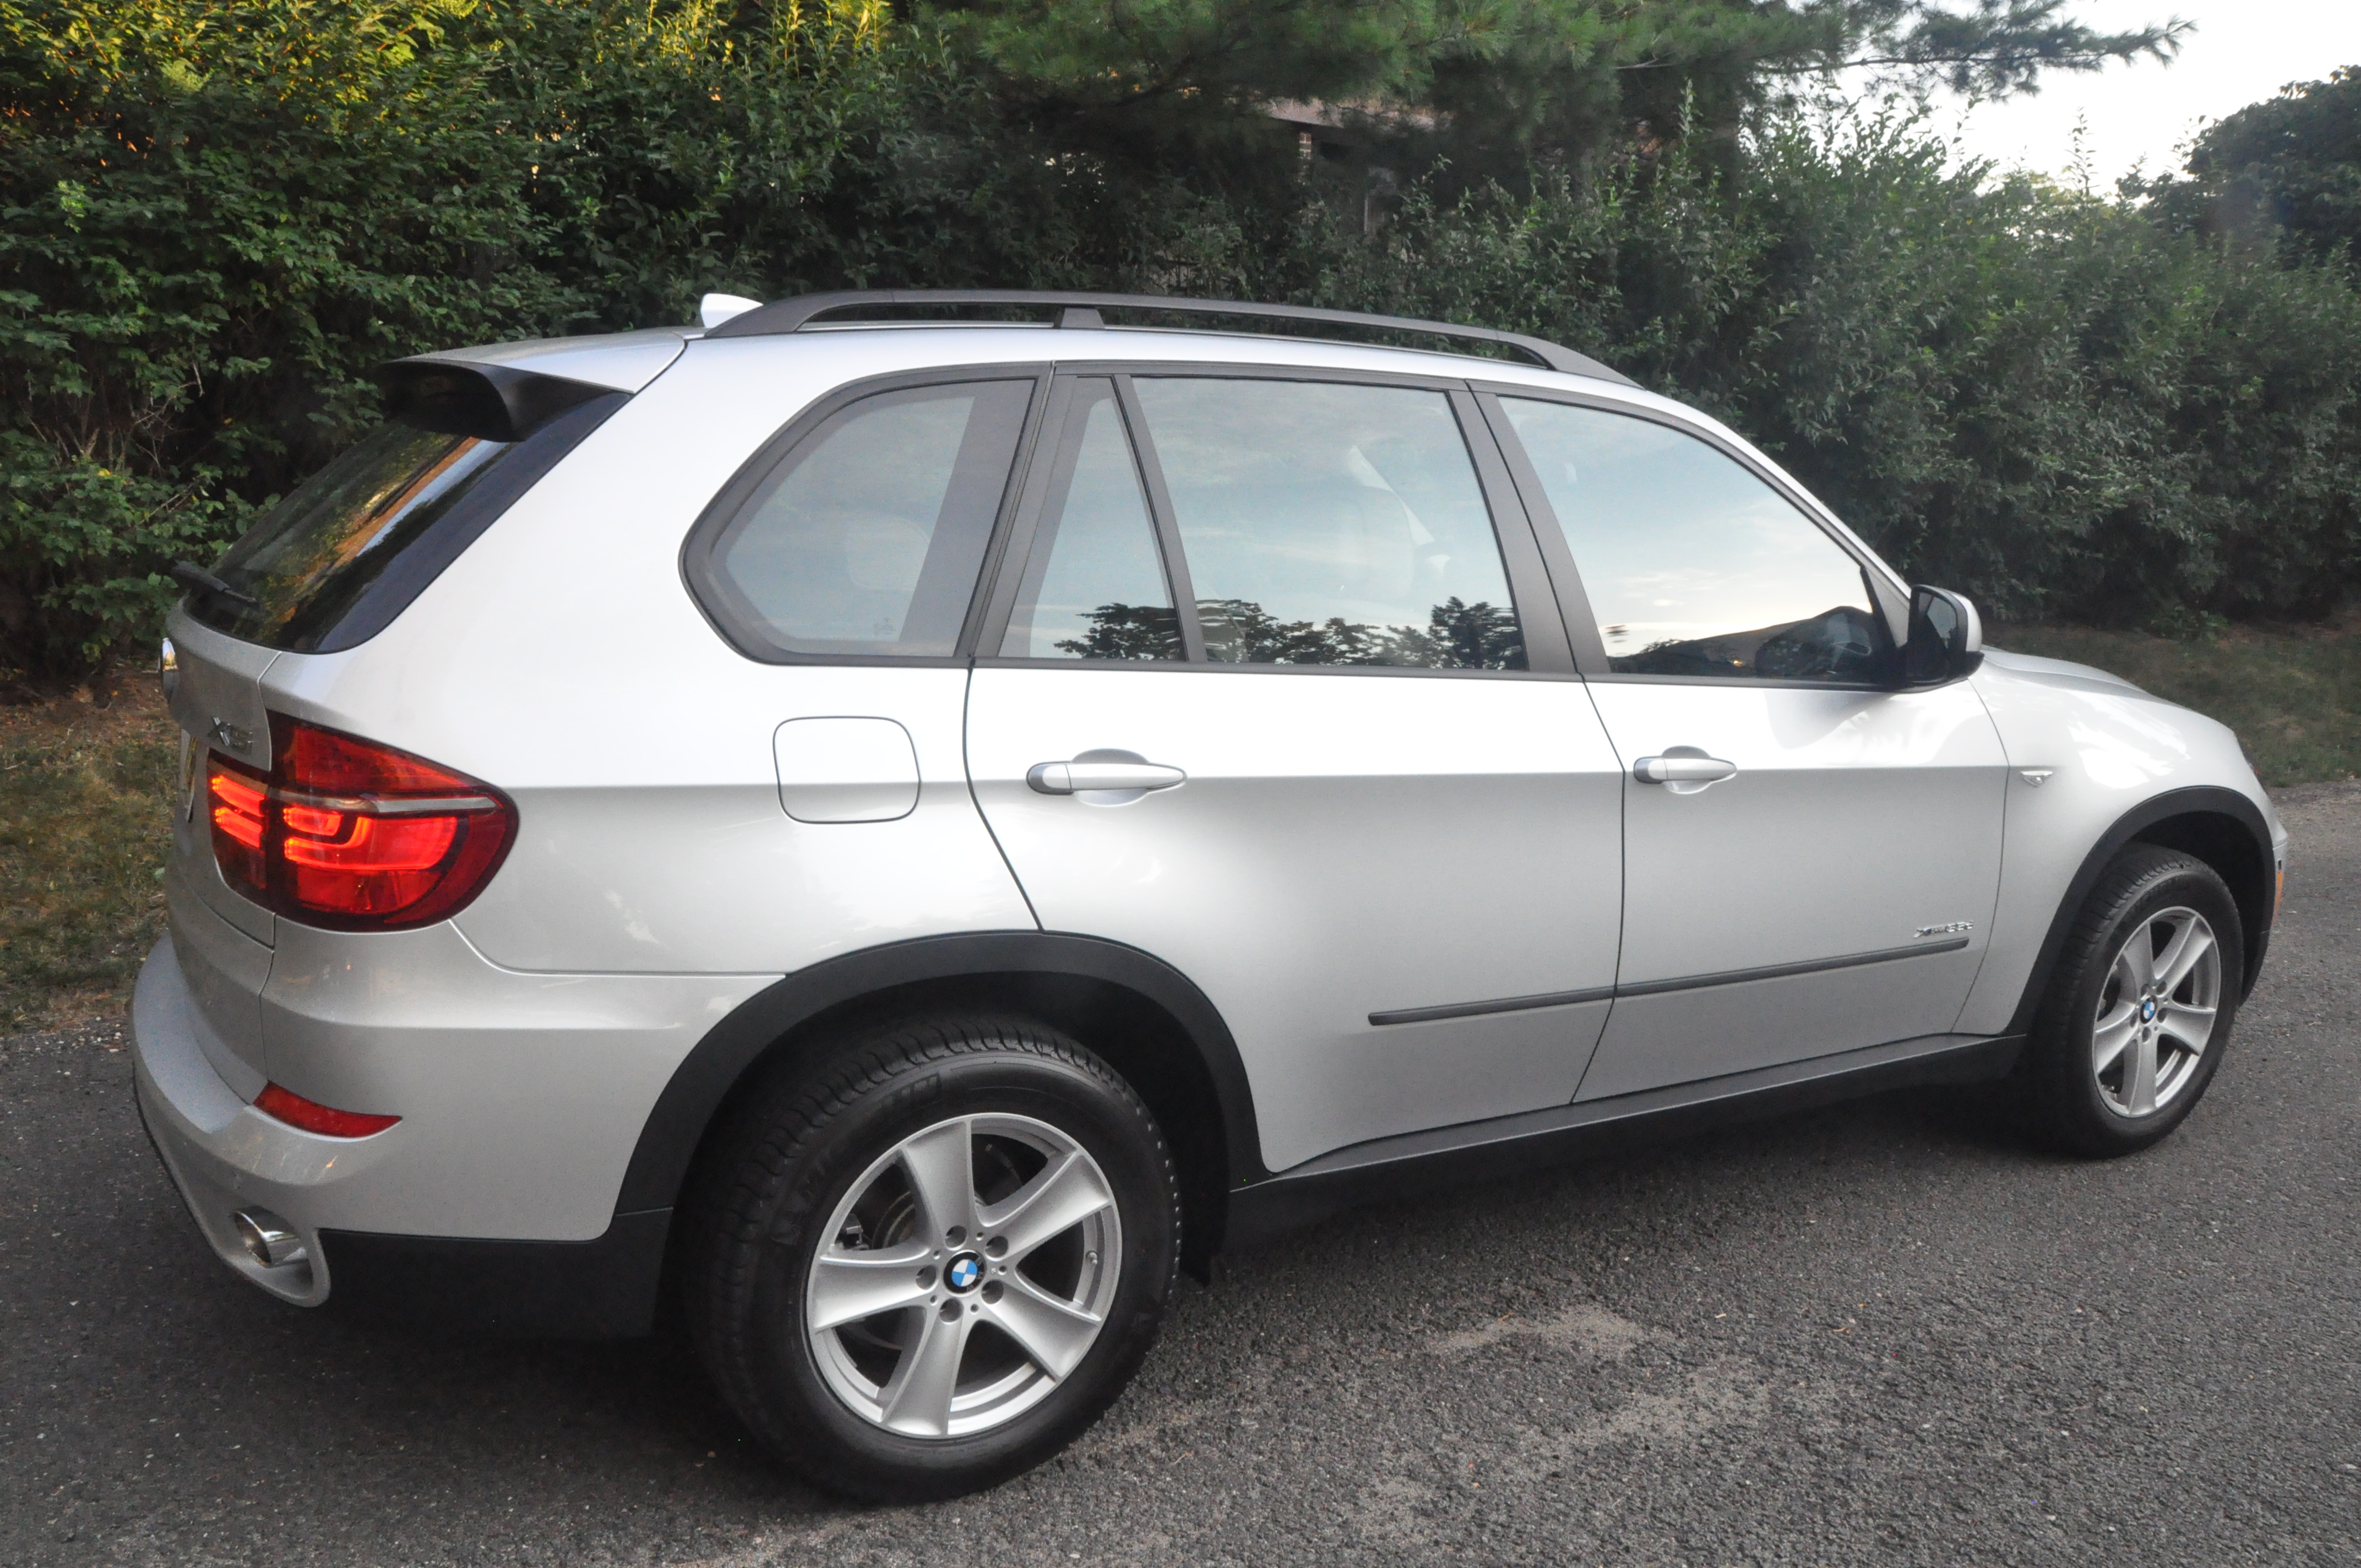 2011 bmw x5 xdrive35d review and first drive the green car driver. Black Bedroom Furniture Sets. Home Design Ideas